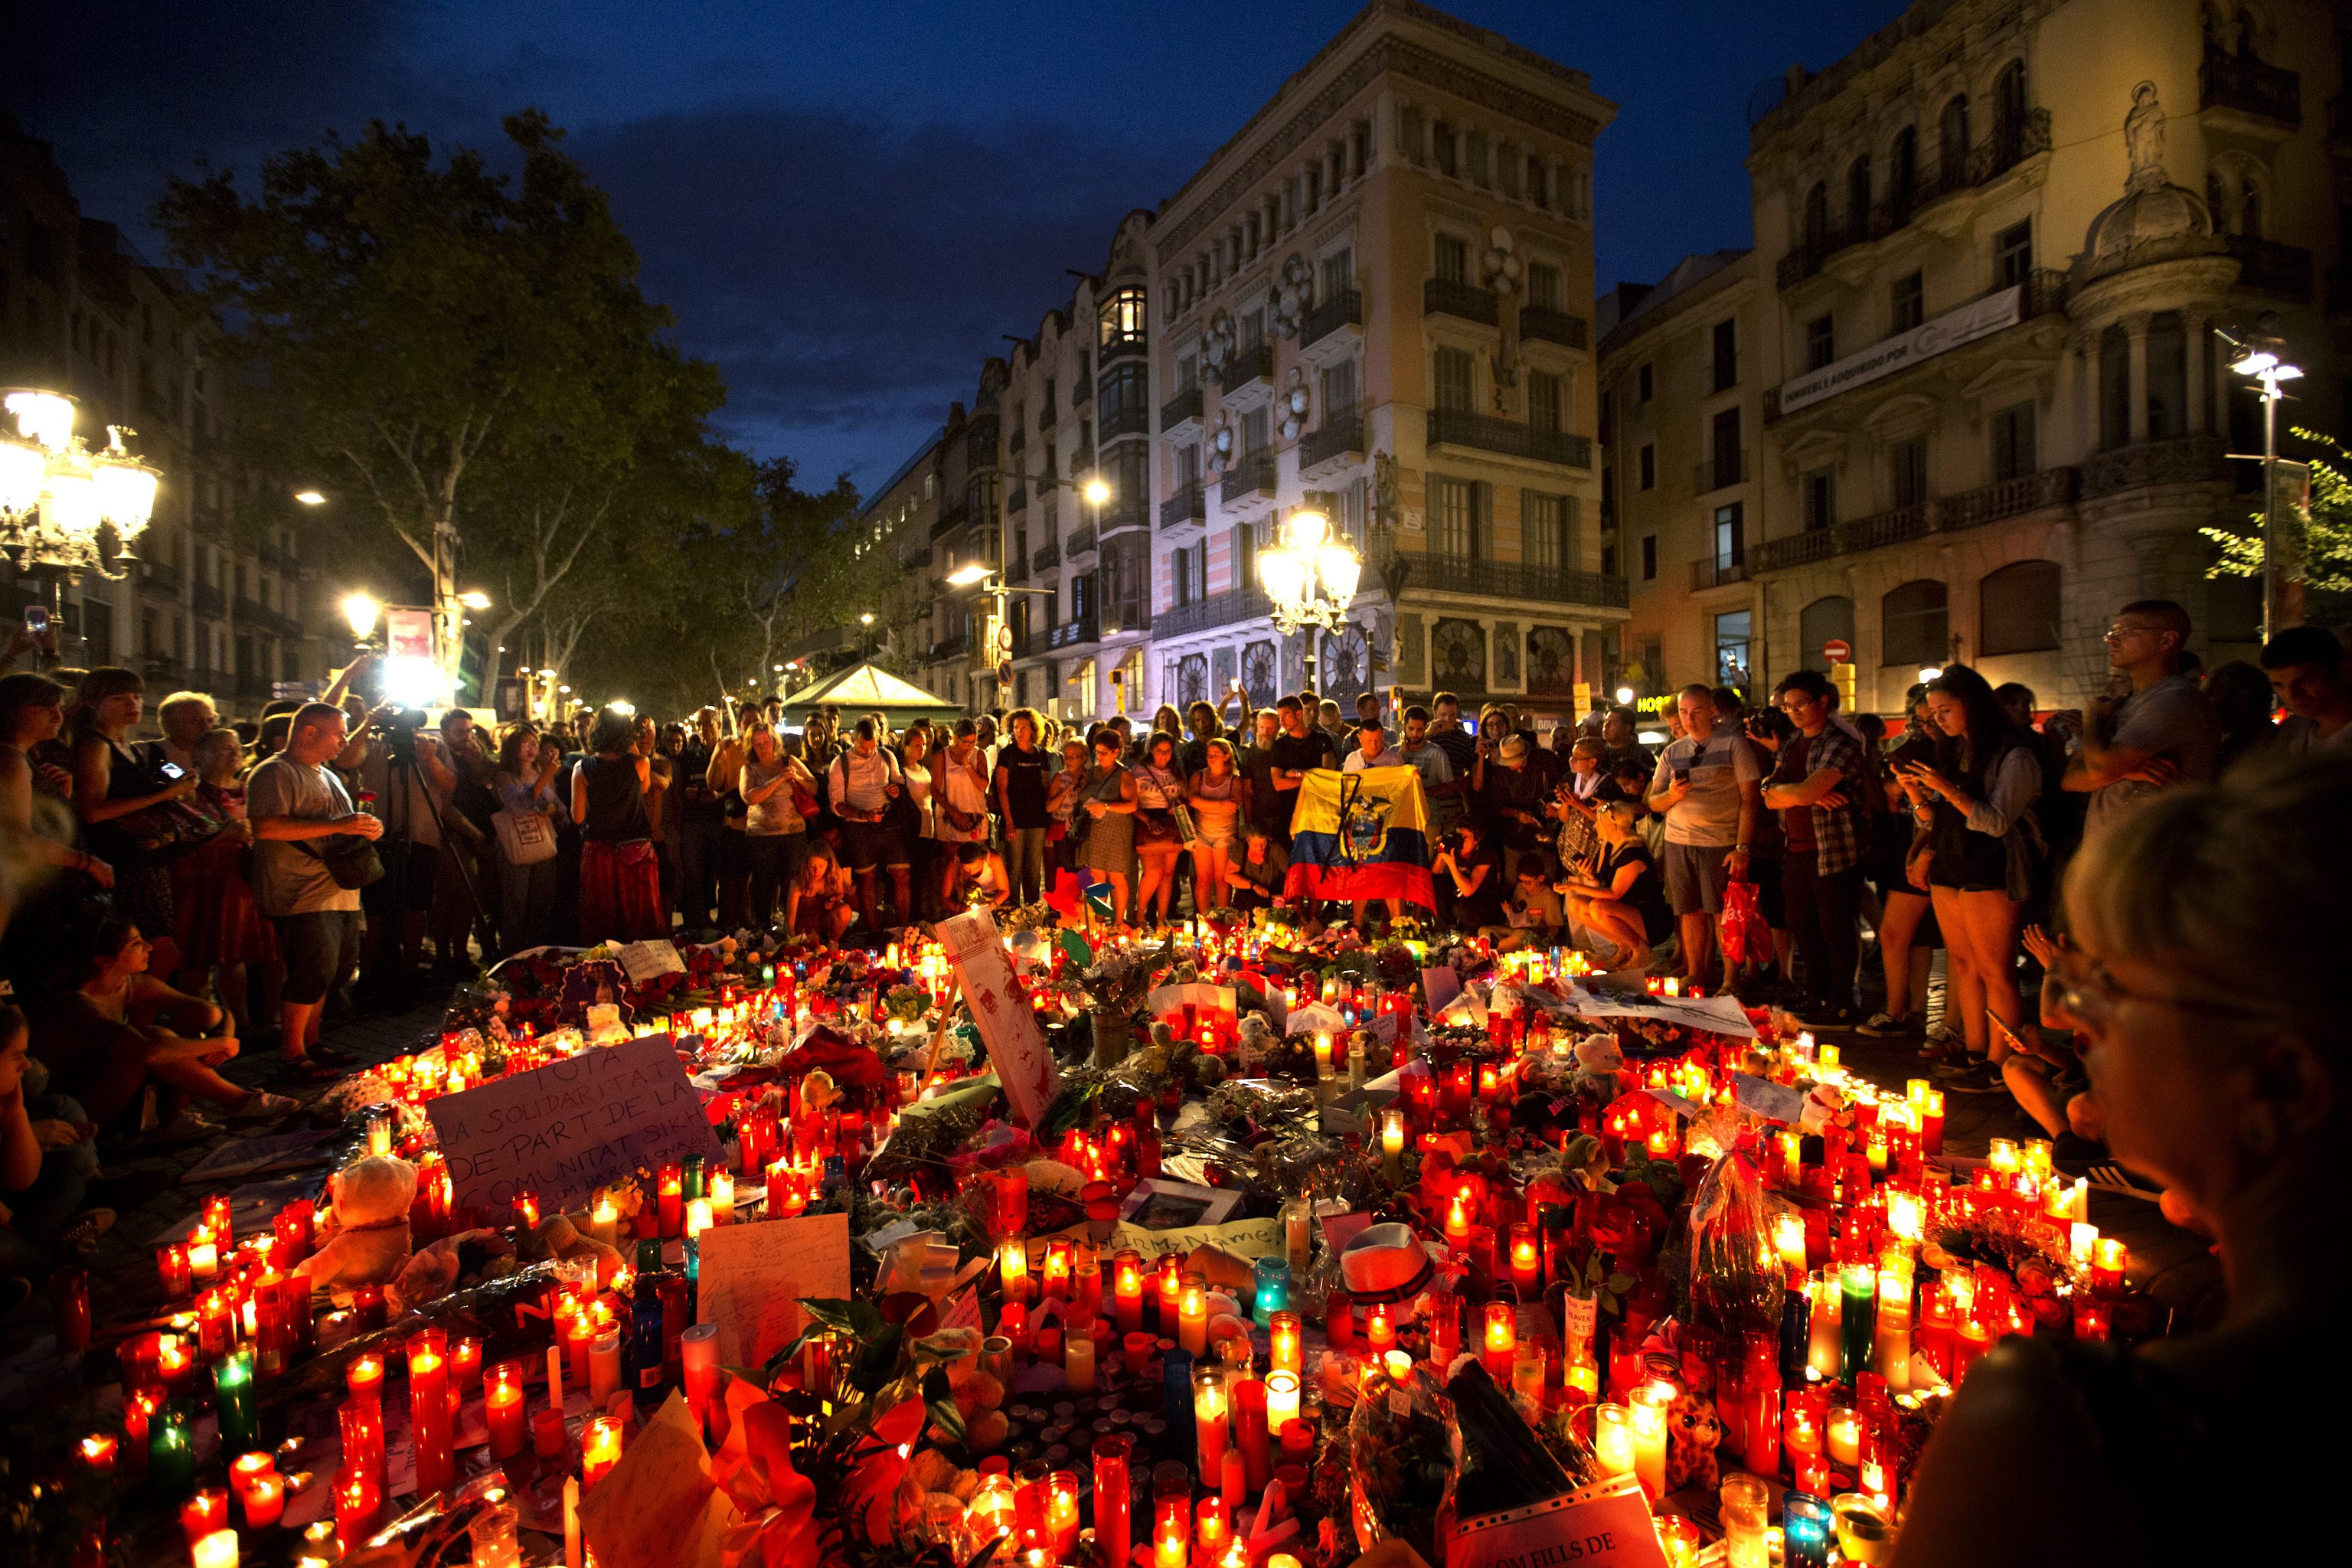 terrorism in spain Exercise increased caution in spain due to terrorism terrorist groups continue plotting possible attacks in spain terrorists may attack with little or no warning, targeting tourist locations, transportation hubs, markets/shopping malls, local government facilities, hotels, clubs, restaurants, places of worship, parks, major sporting and cultural events, educational institutions, airports .